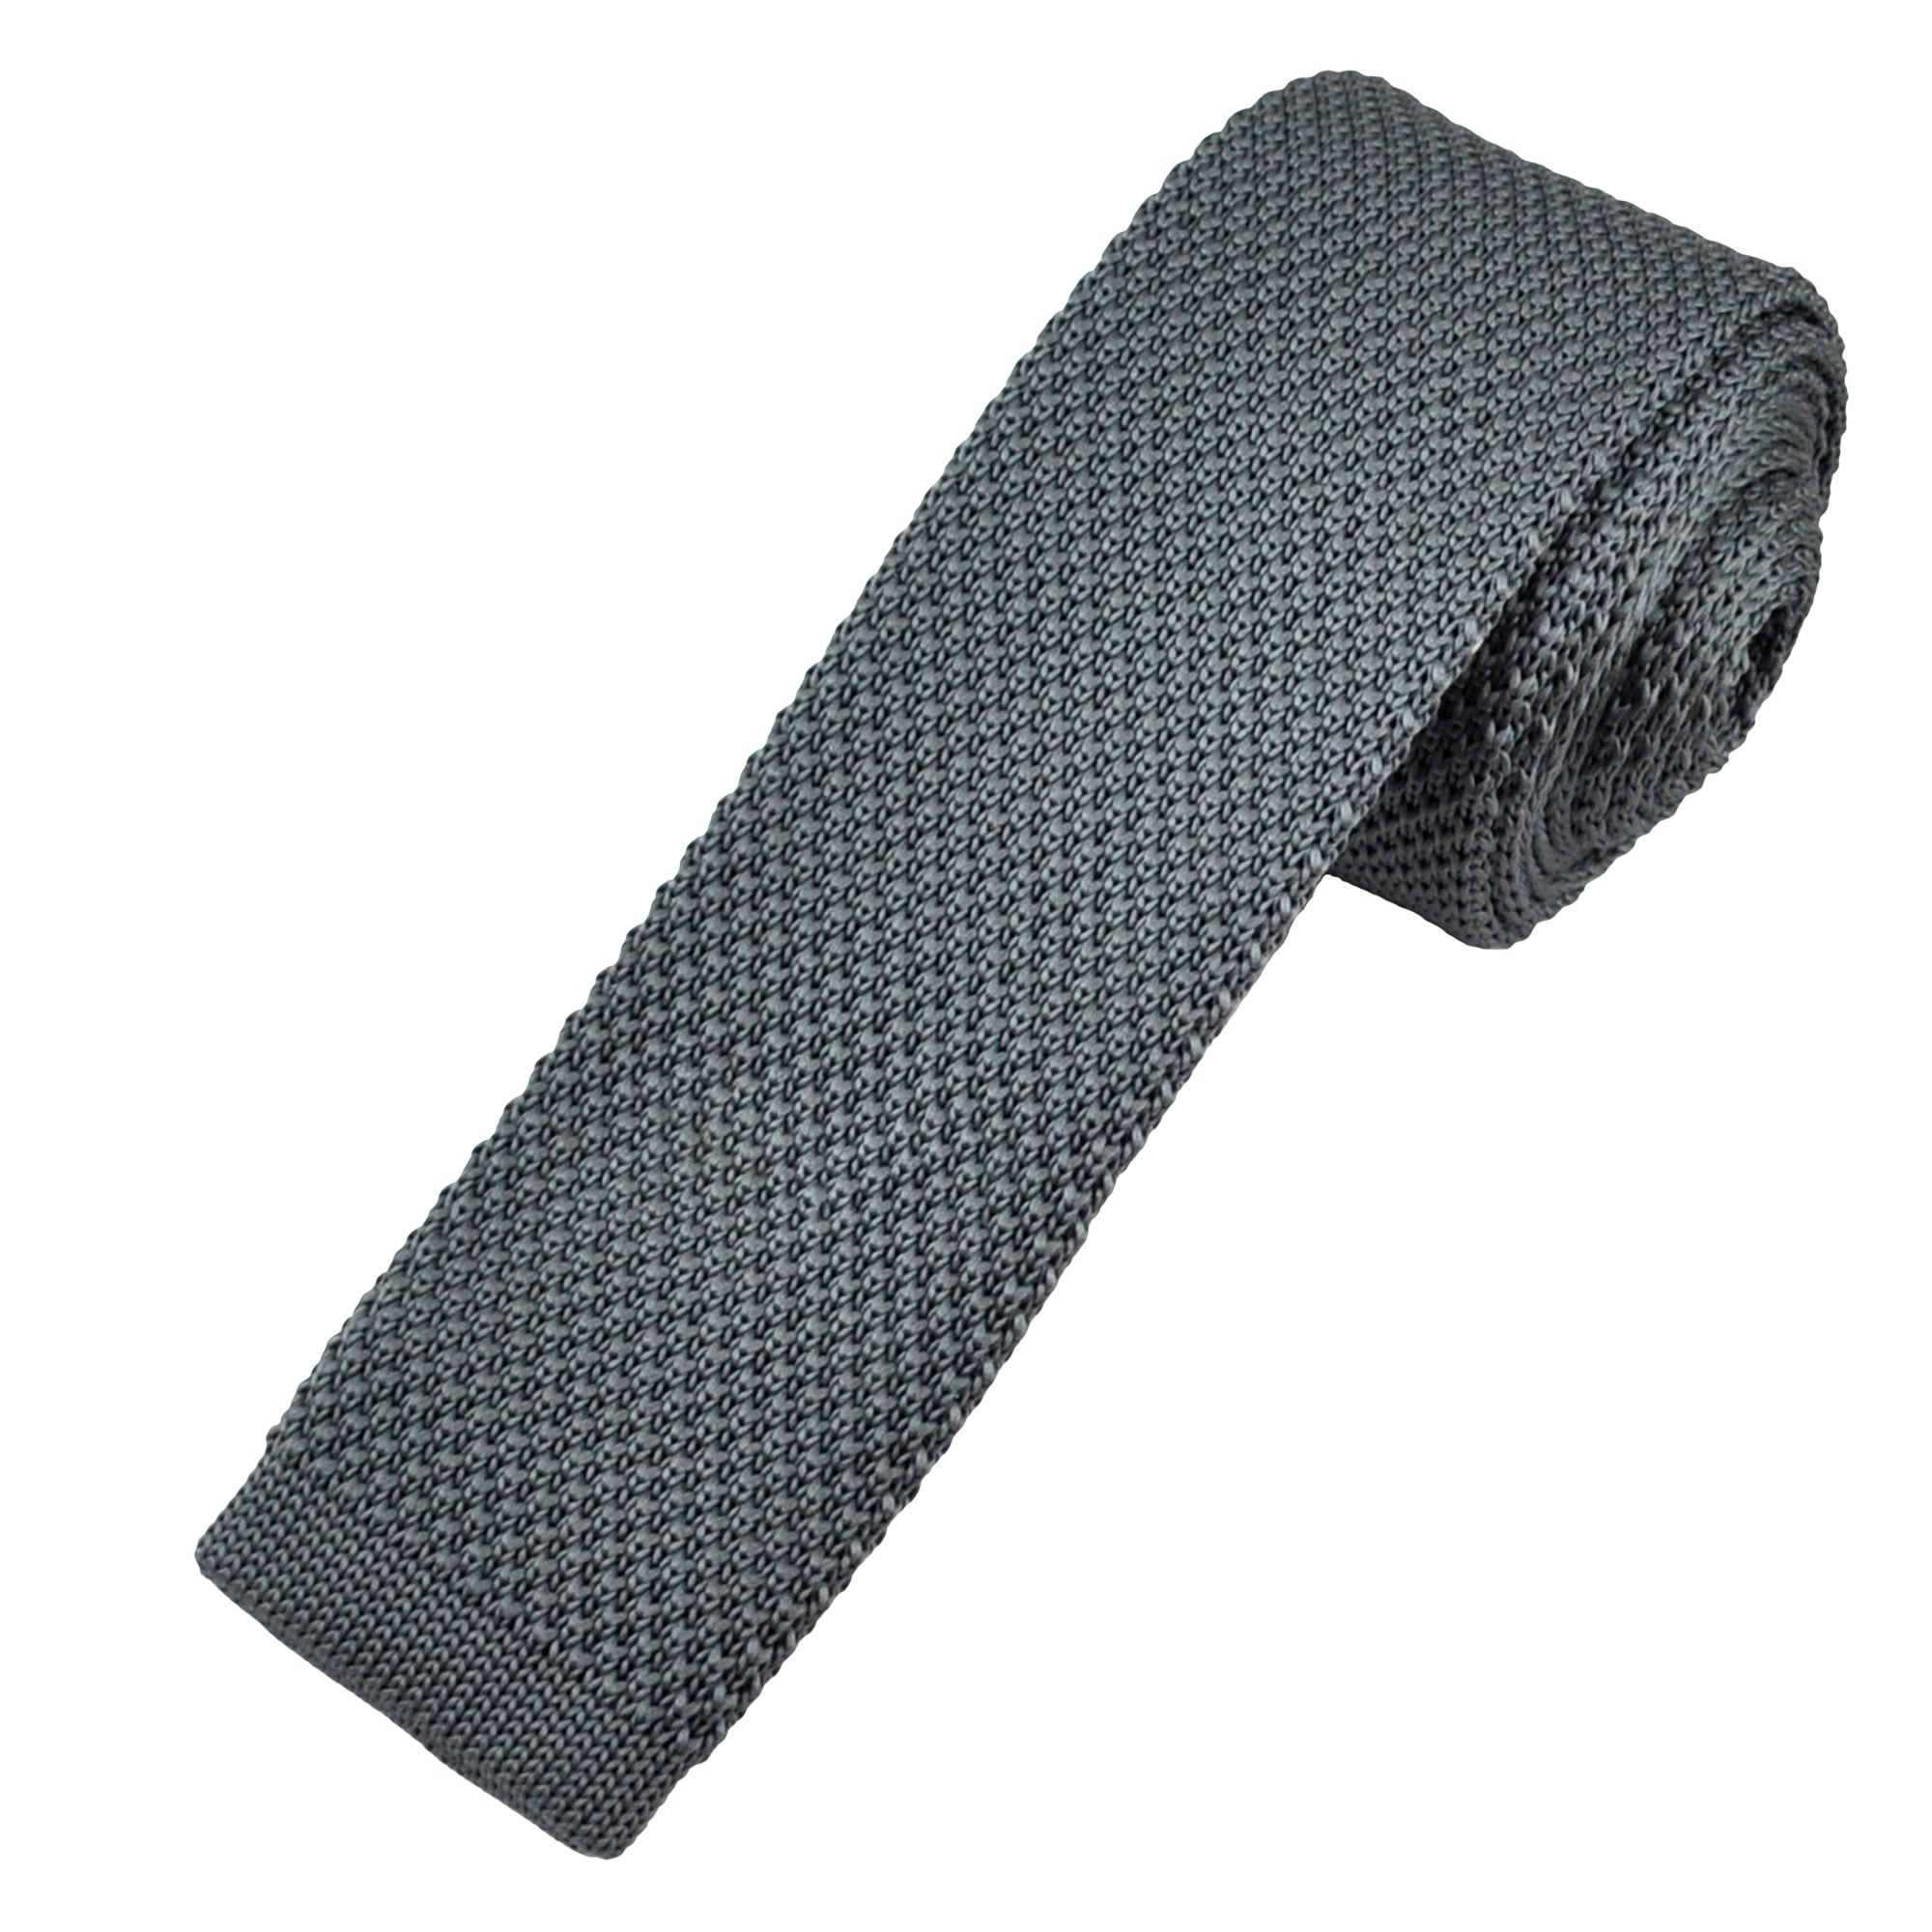 Pattern Ties, Striped Ties, Solid Ties and more. At downiloadojg.gq, we specialize in.